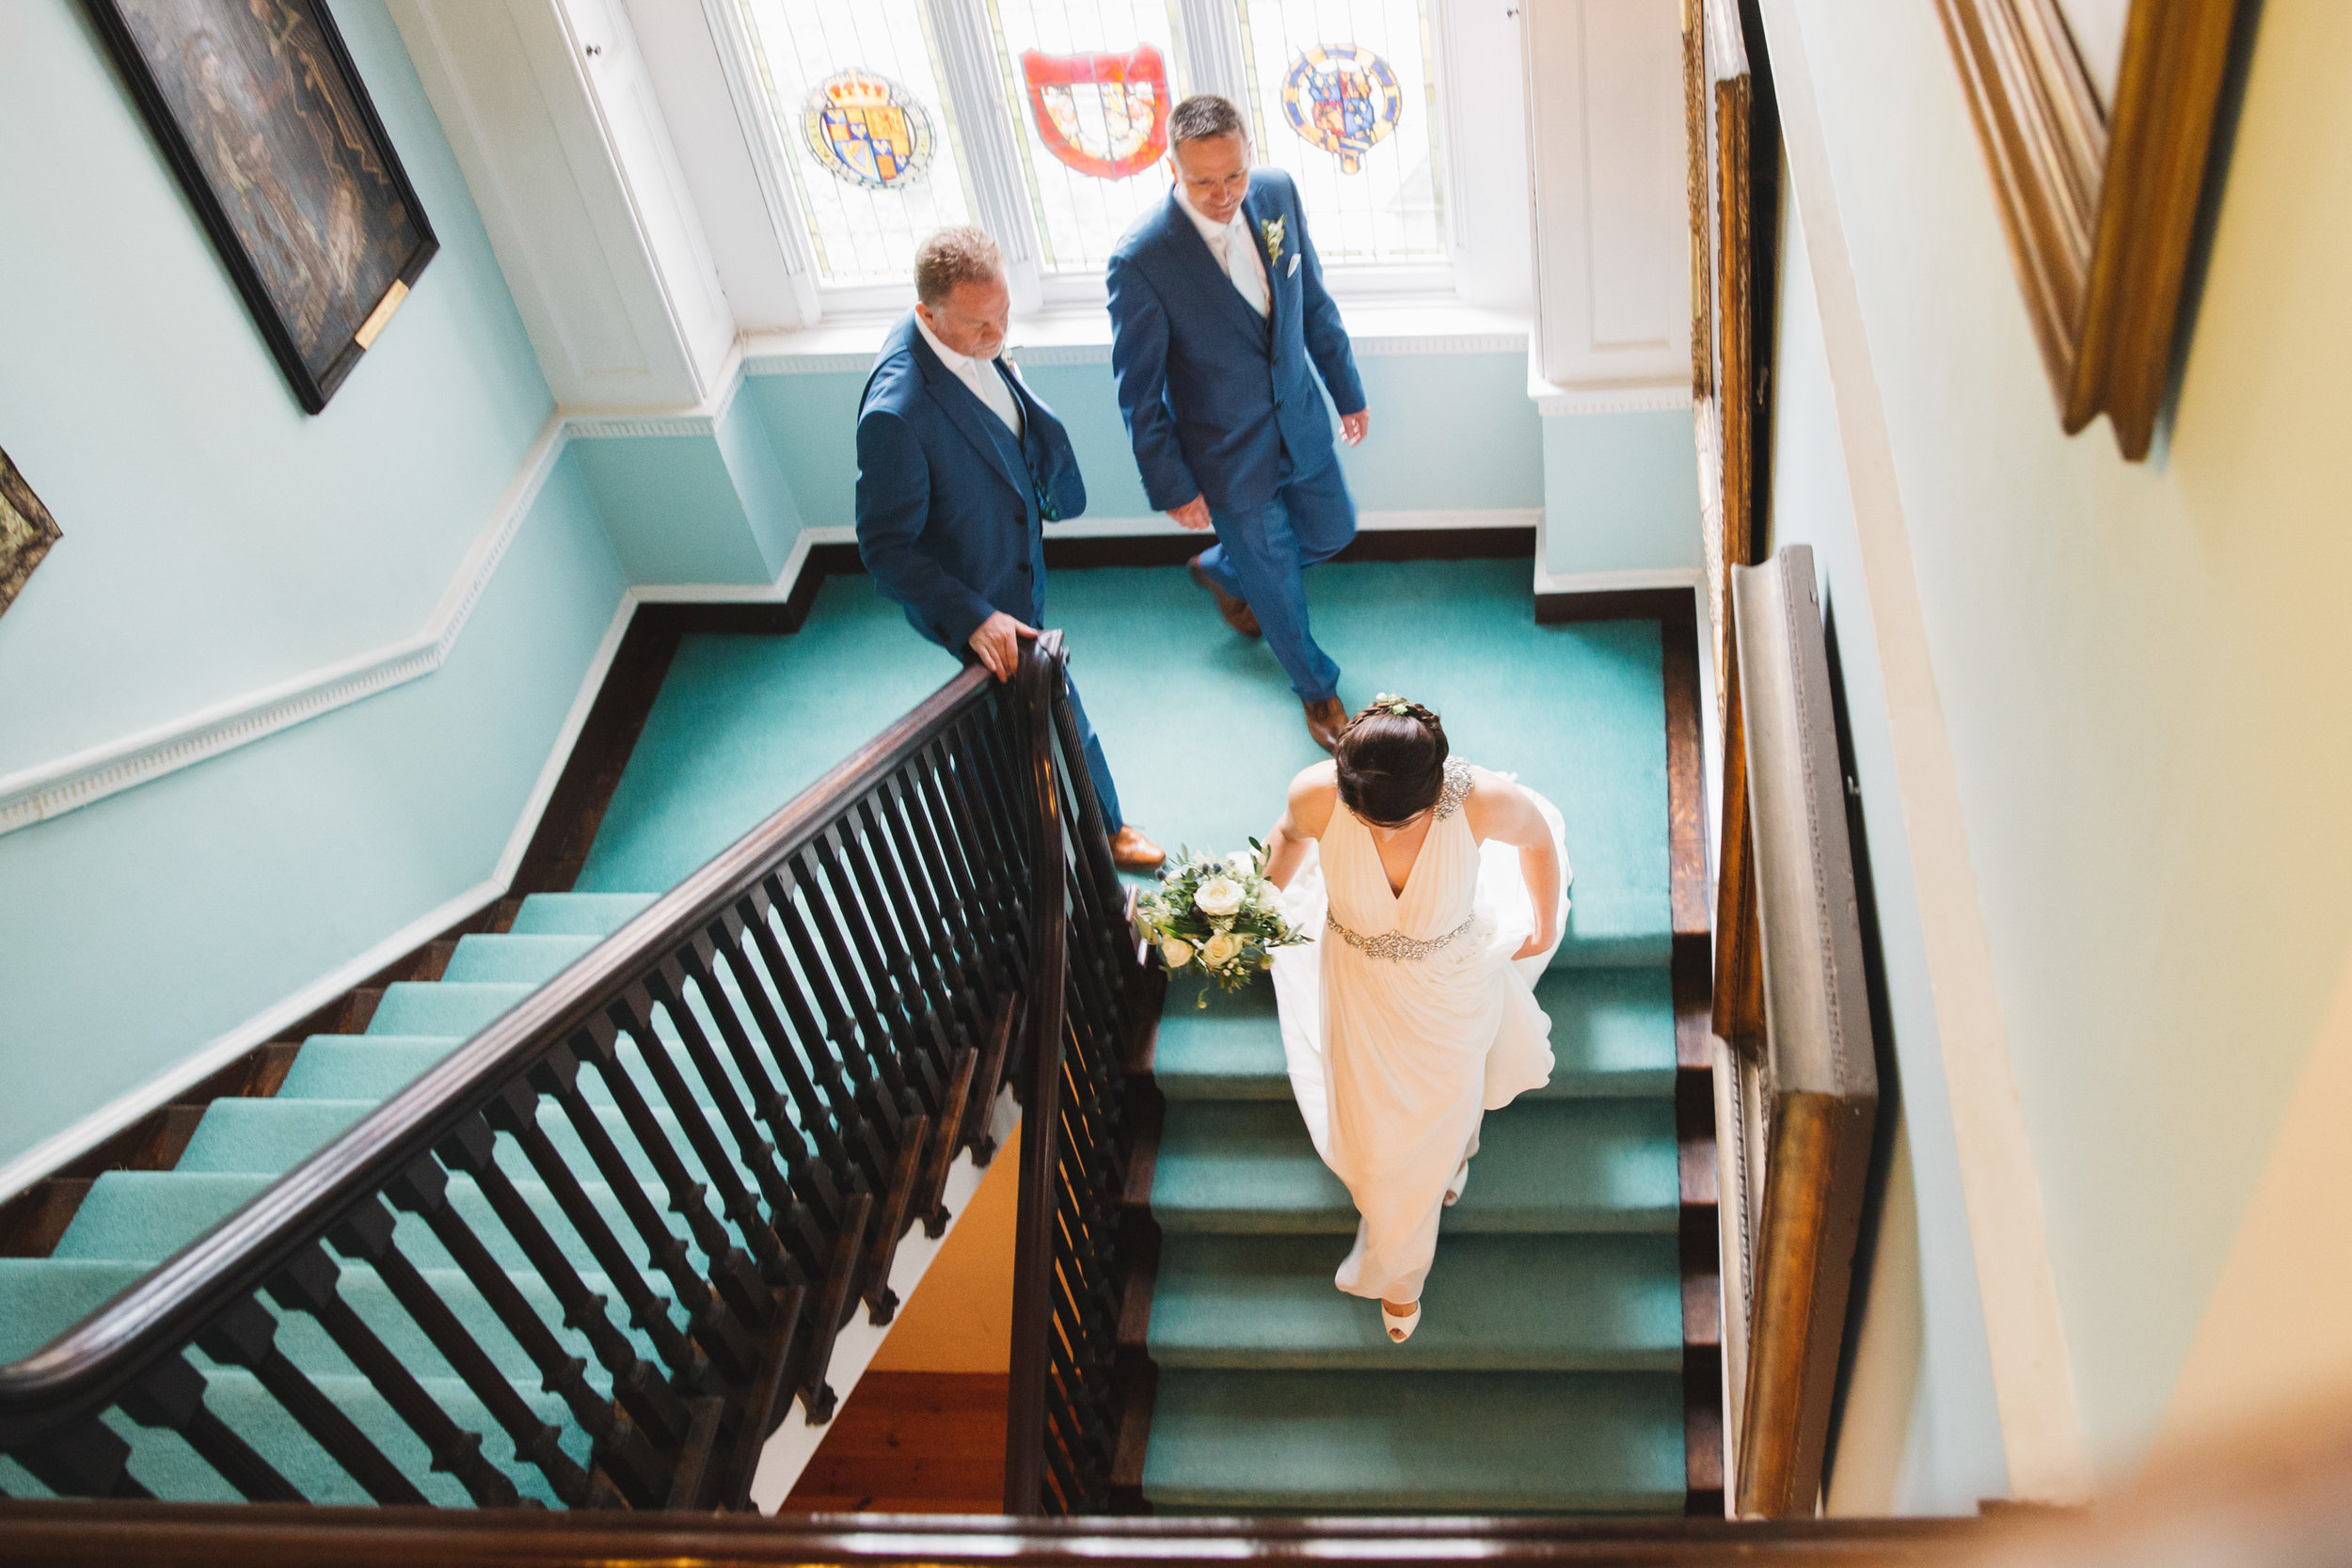 chiddingstone-castle-wedding-photographer